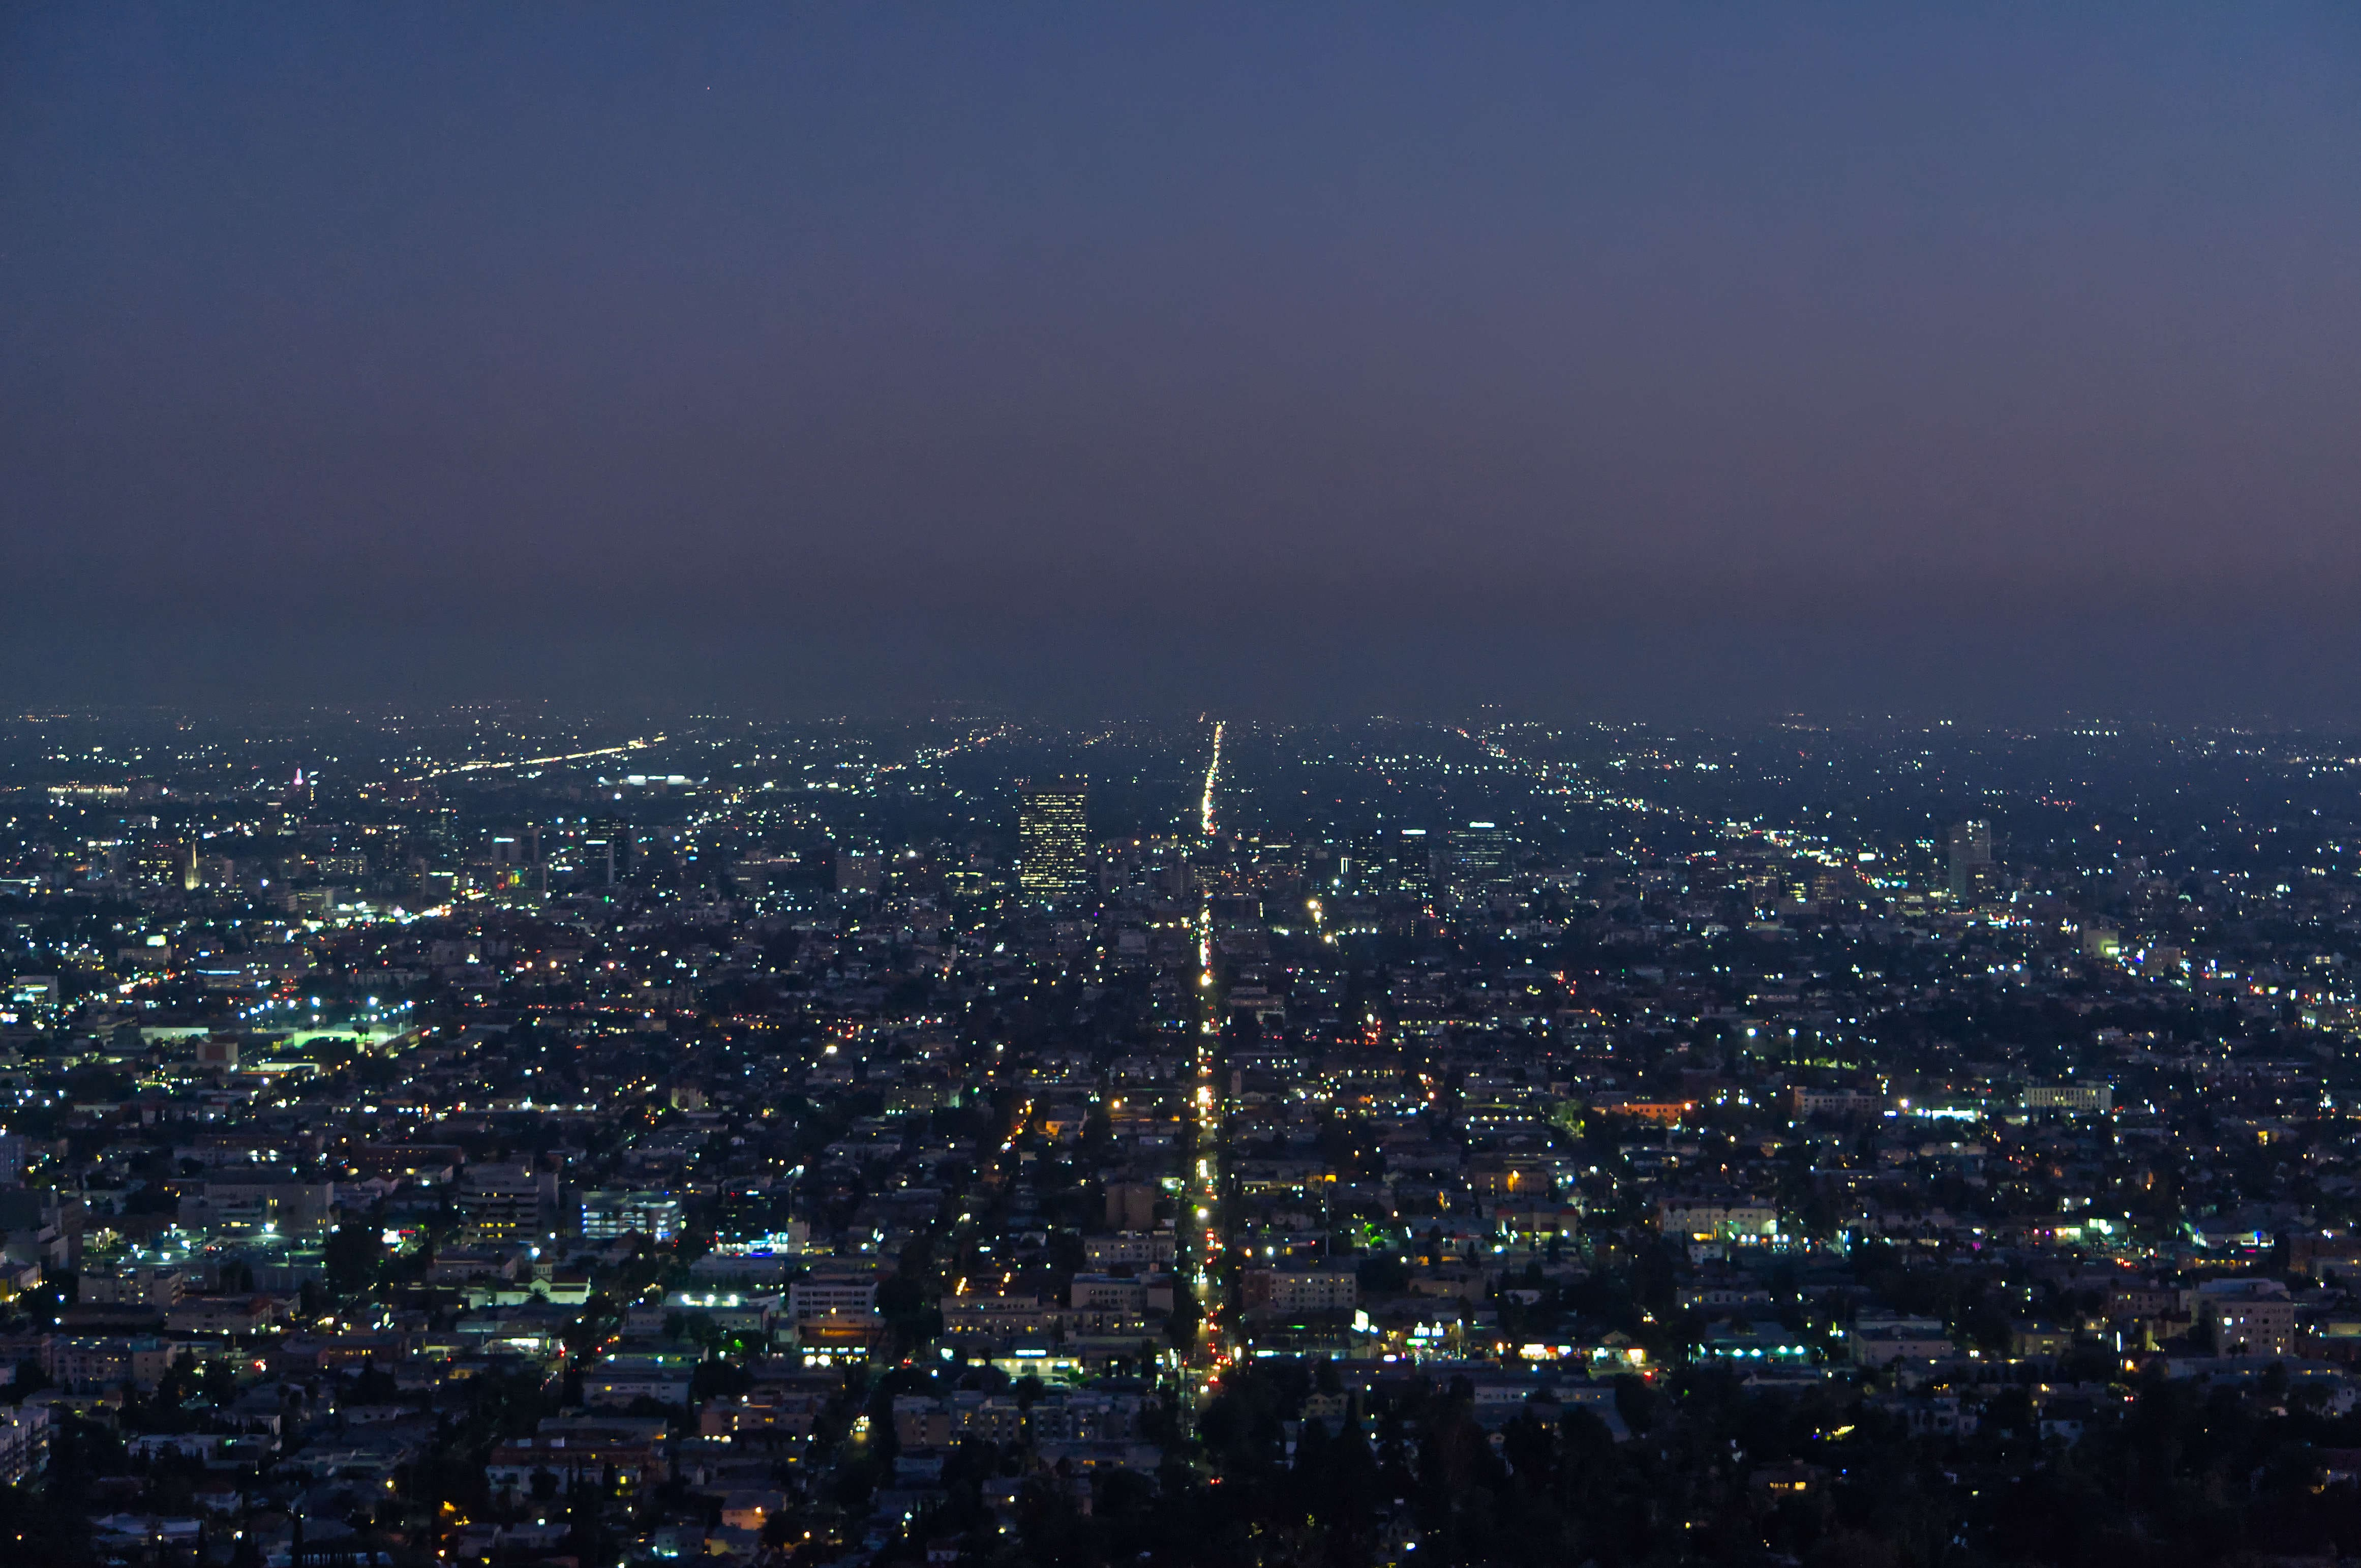 Los Angeles at night, as seen from the Griffith Observatory